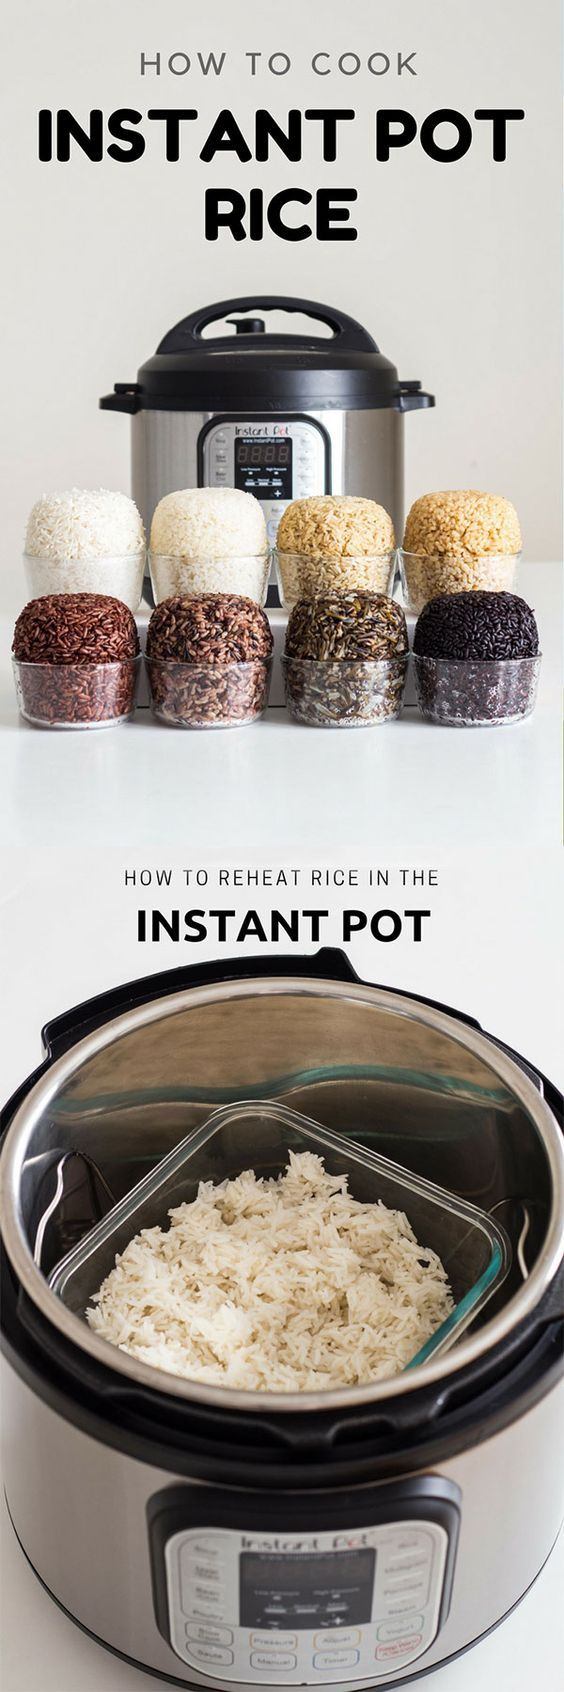 Instant Pot Rice | Recipe | Instant Pot | Instant pot ...